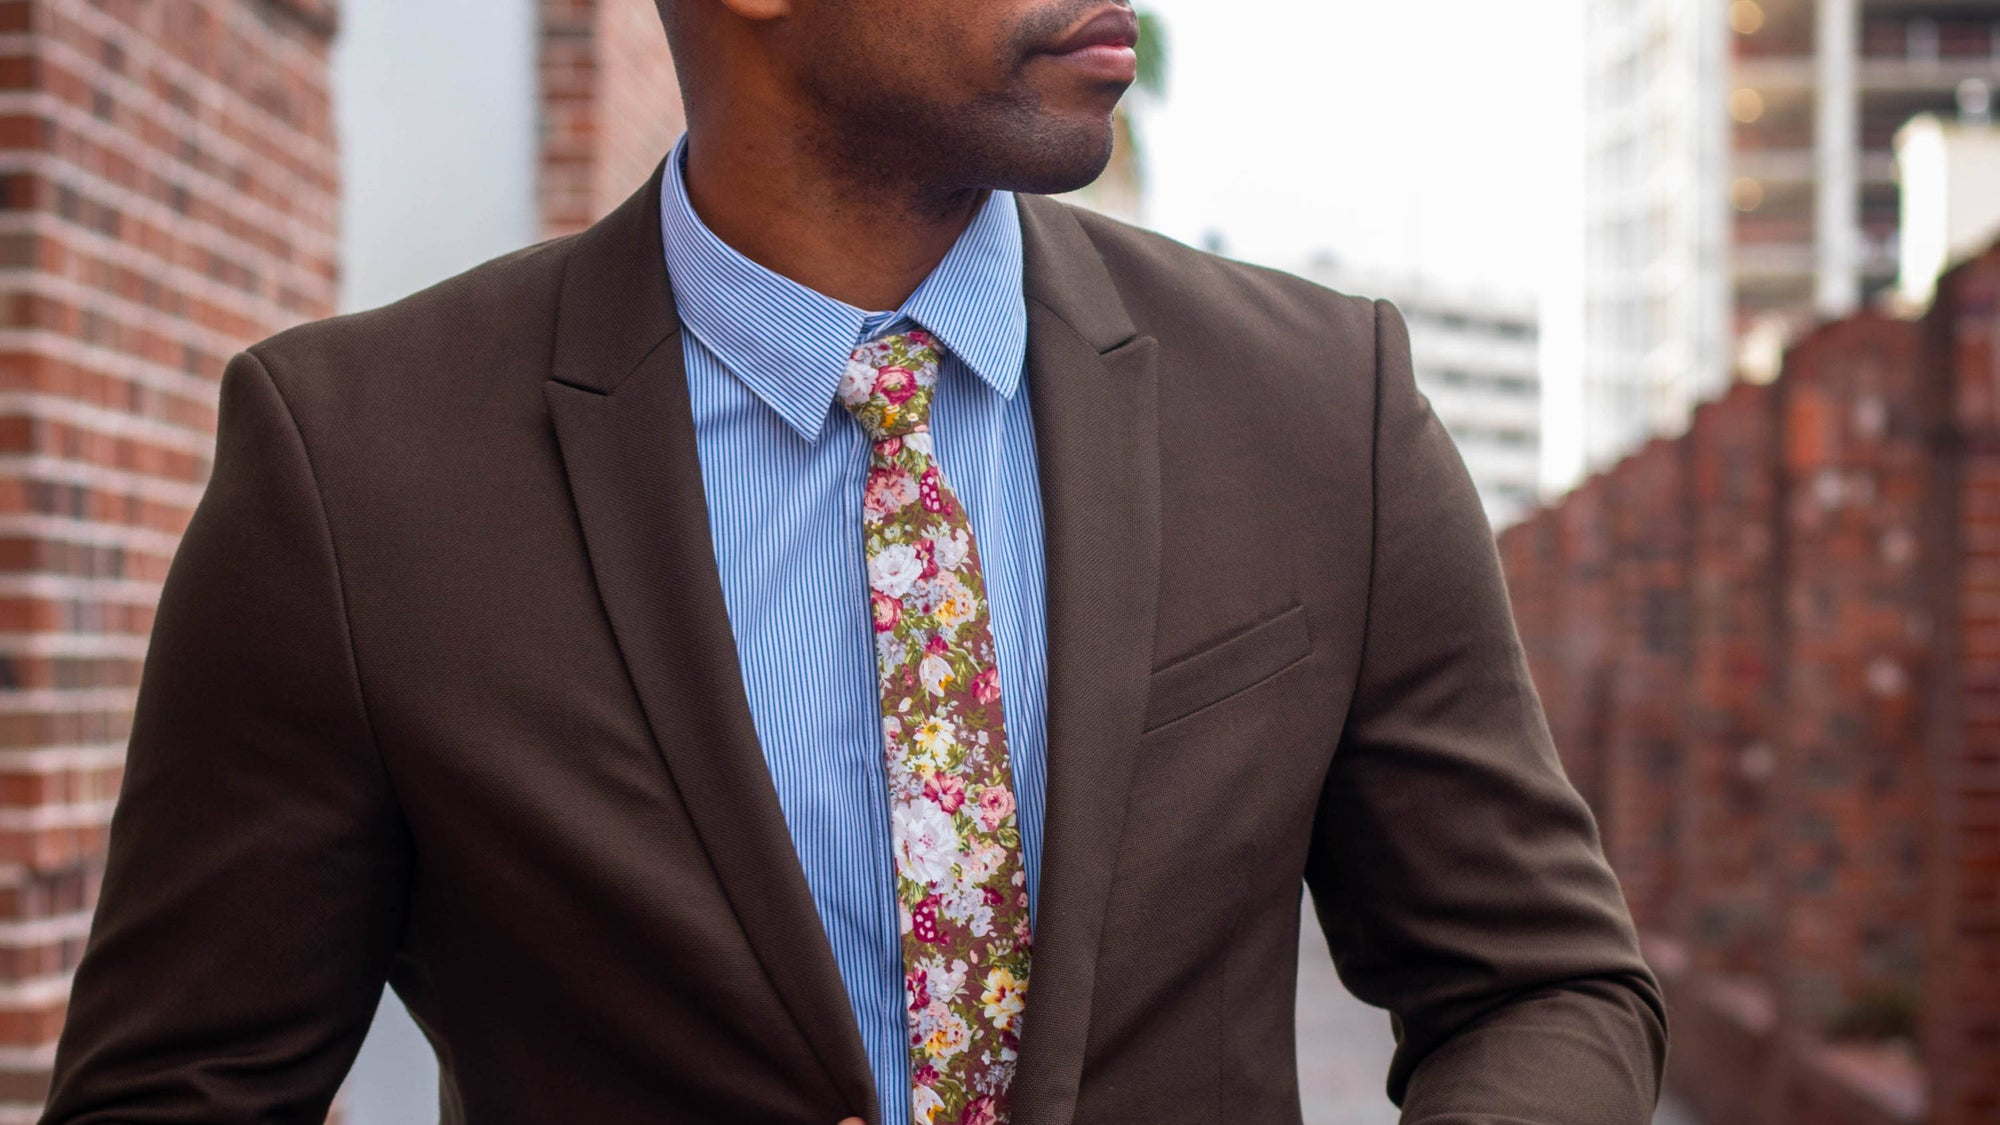 8 Floral Ties The Man in Your Life Will Love